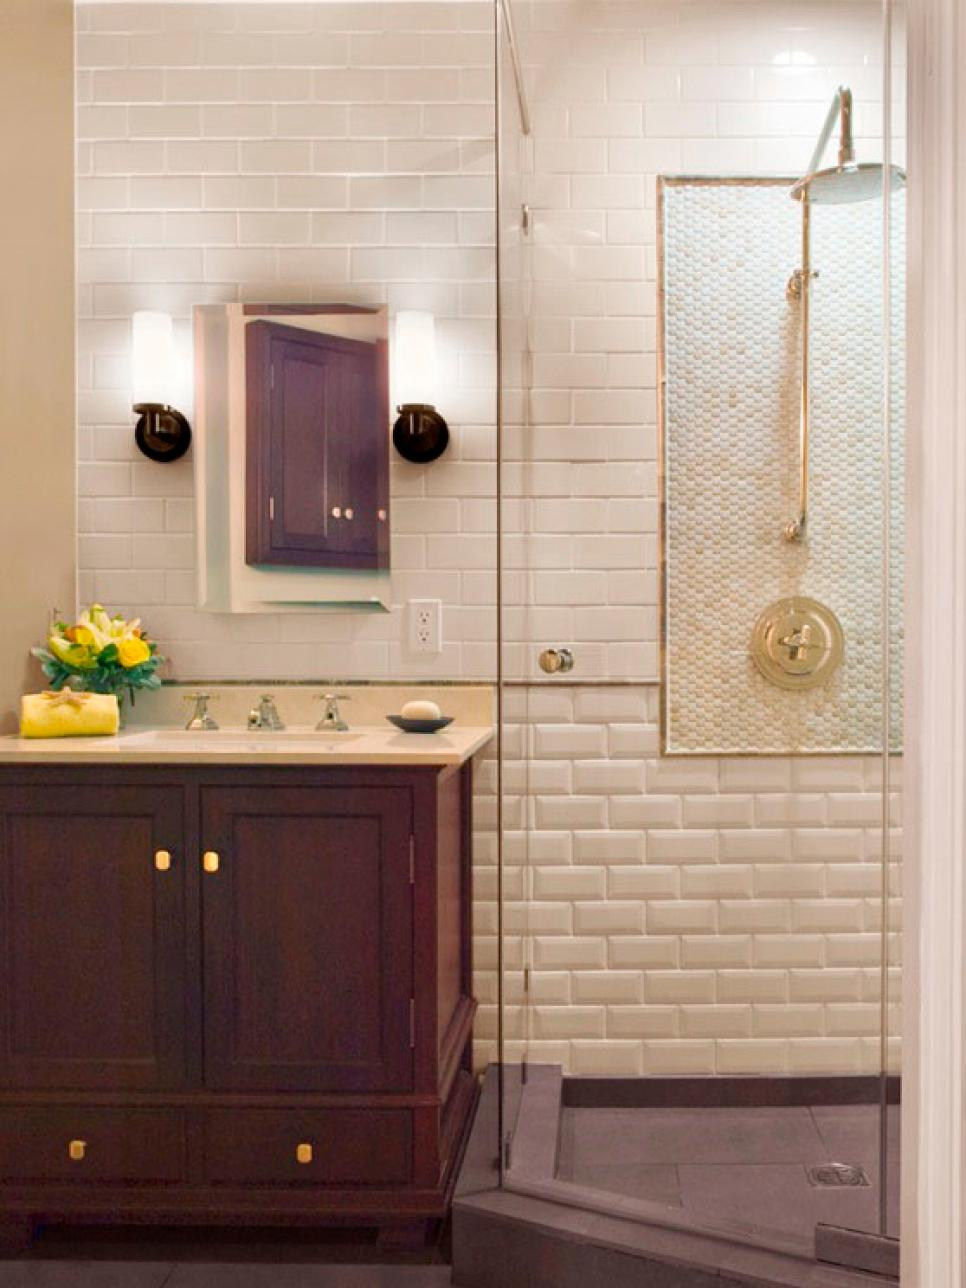 Bathroom Shower Designs HGTV - Tile shower ideas for small bathrooms for small bathroom ideas